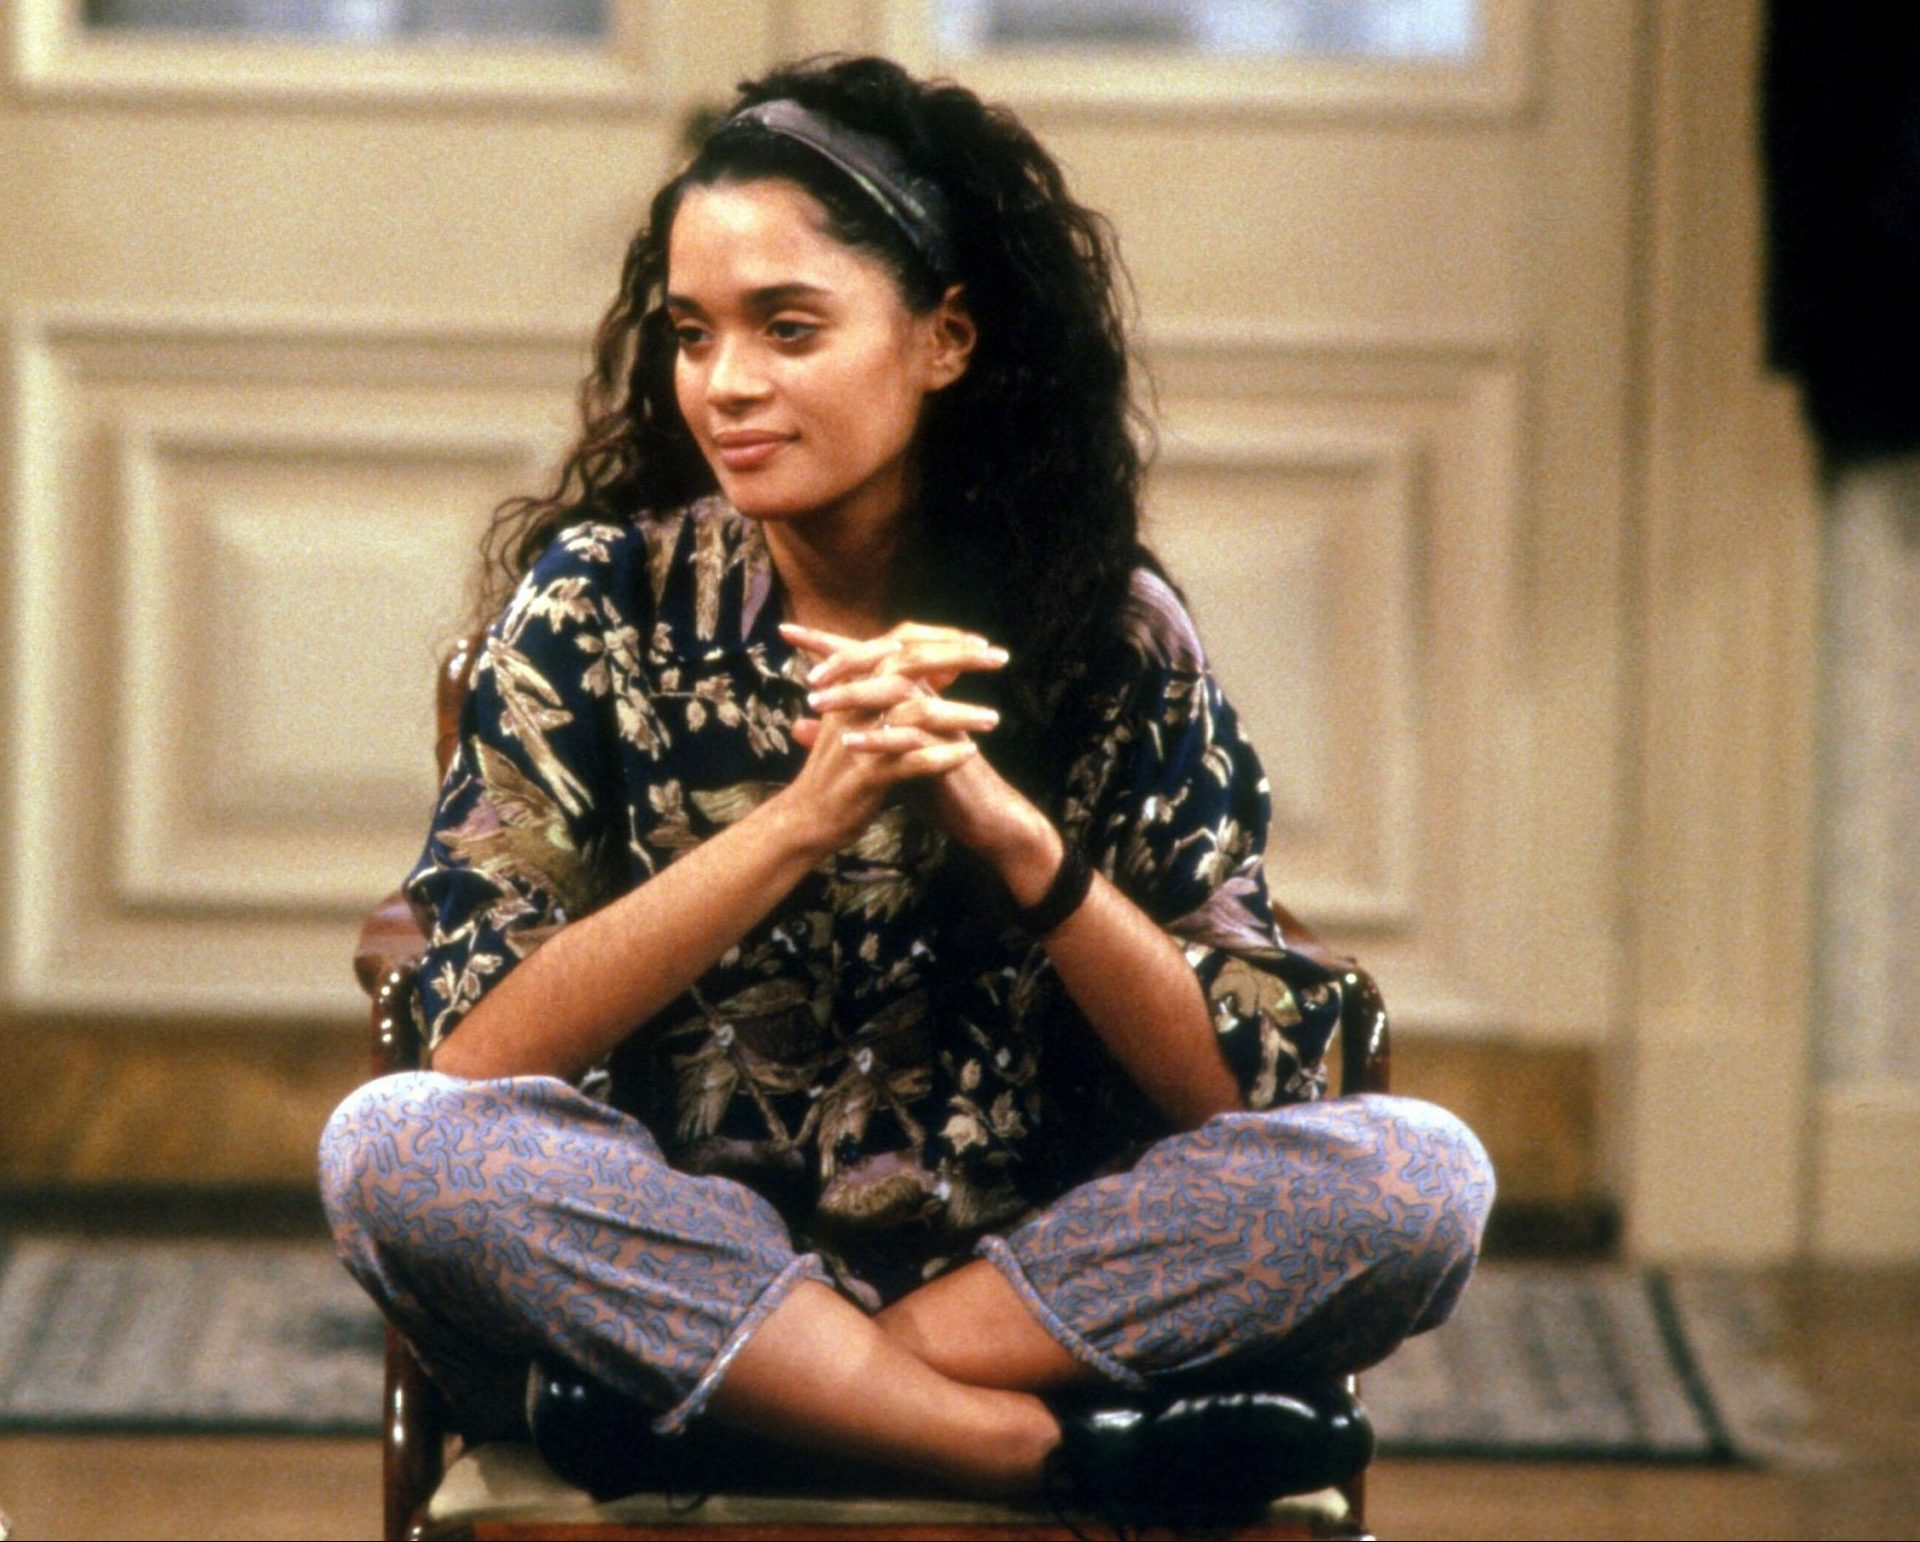 lisa bonet cosby show scaled e1605259789613 21 90s TV Actresses We All Had A Crush On When We Were Younger